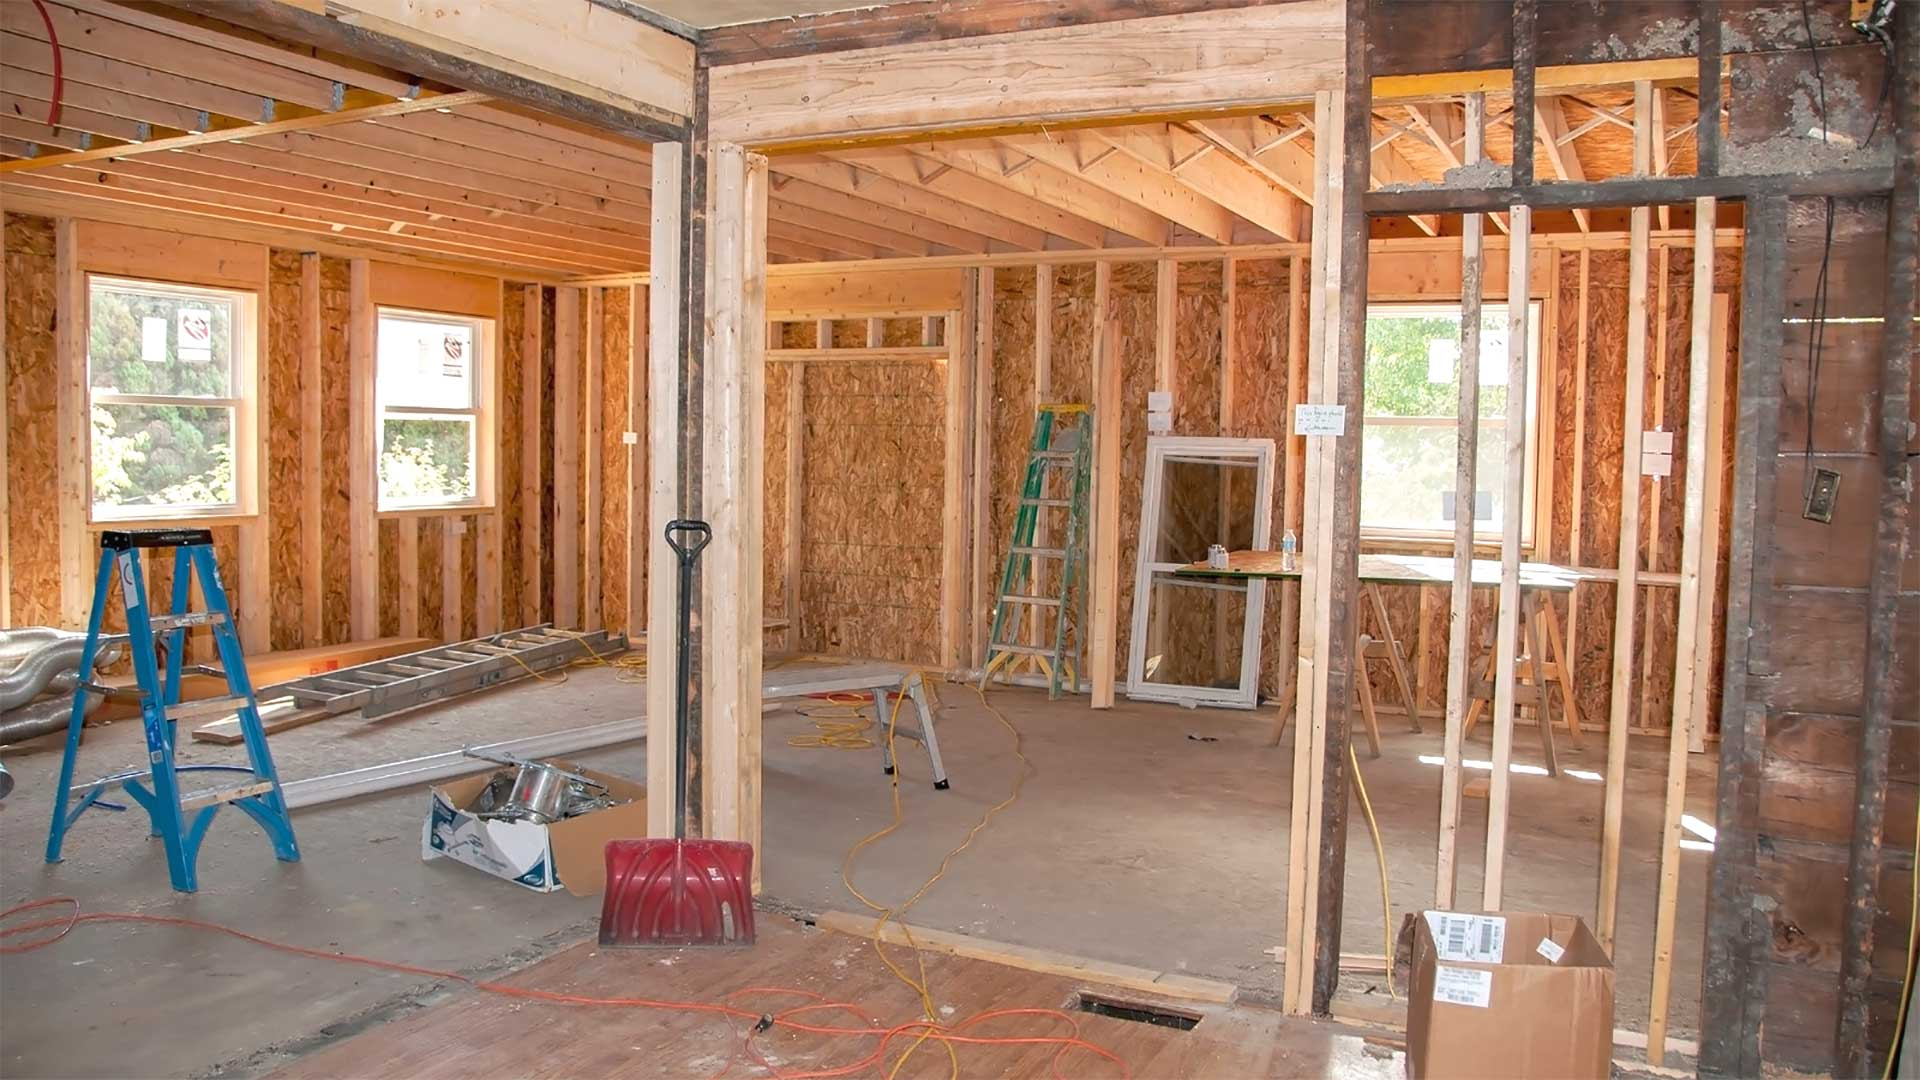 3 Green Alternatives for Your Next Home Renovation   Today ...